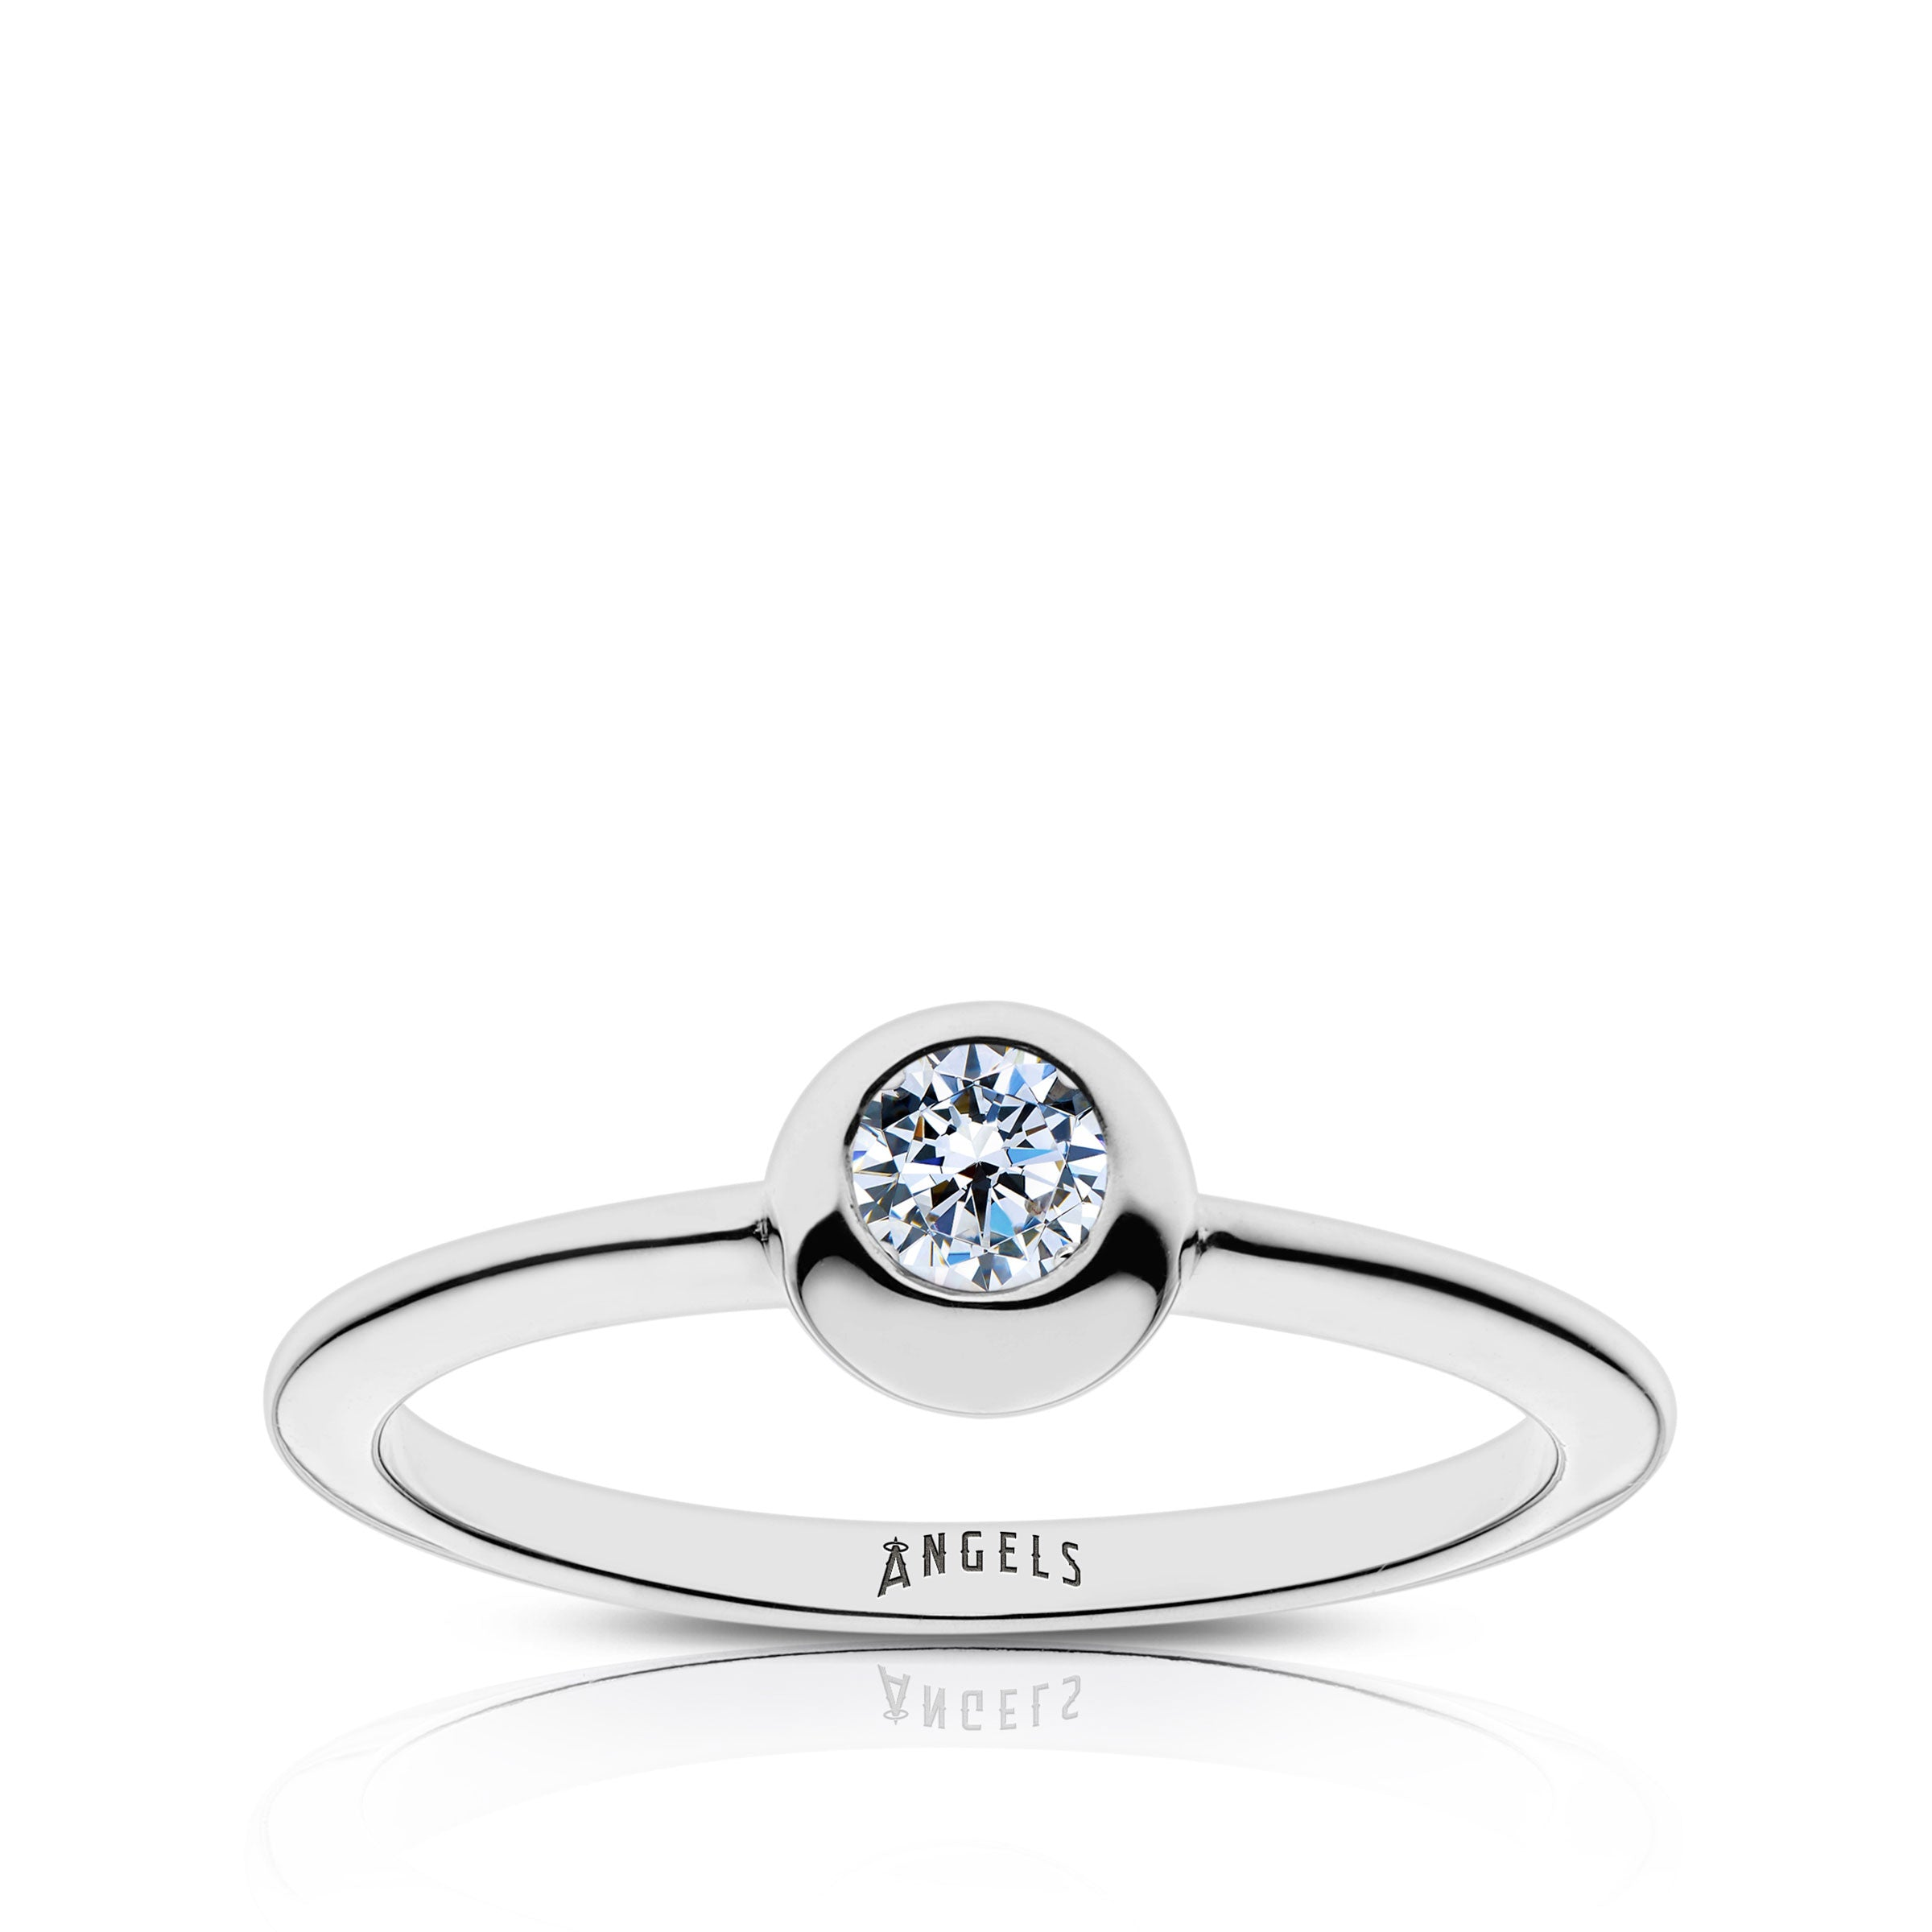 Angels Engraved Diamond Ring Size 5